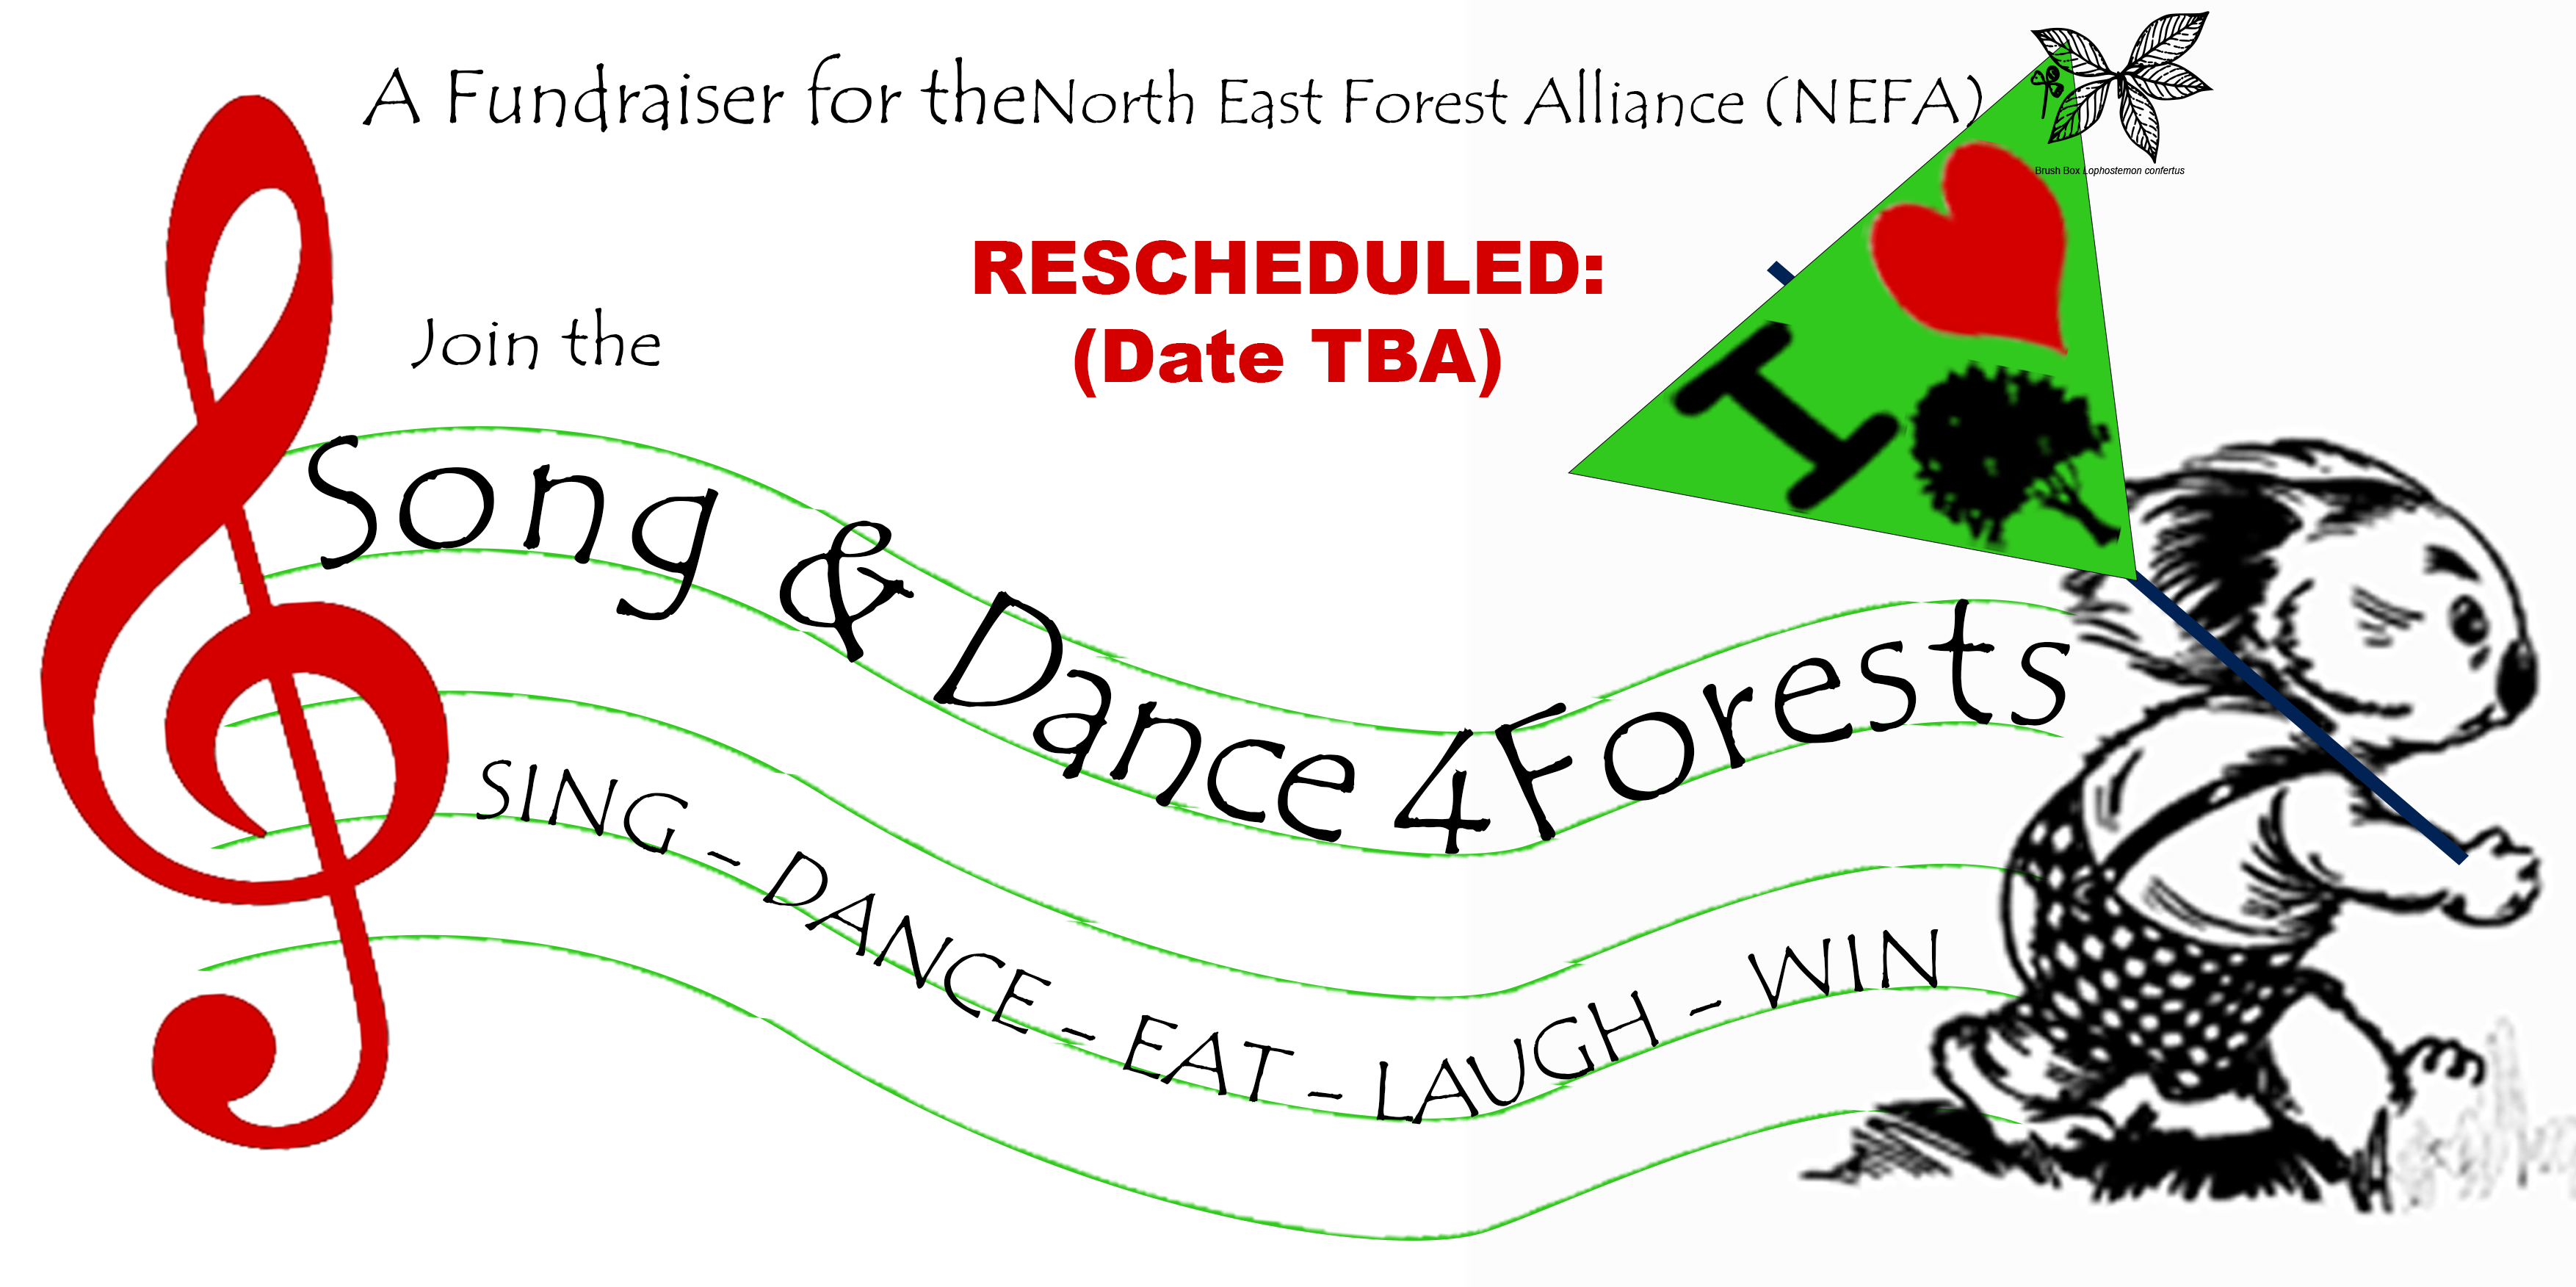 Song & Dance 4 Forests